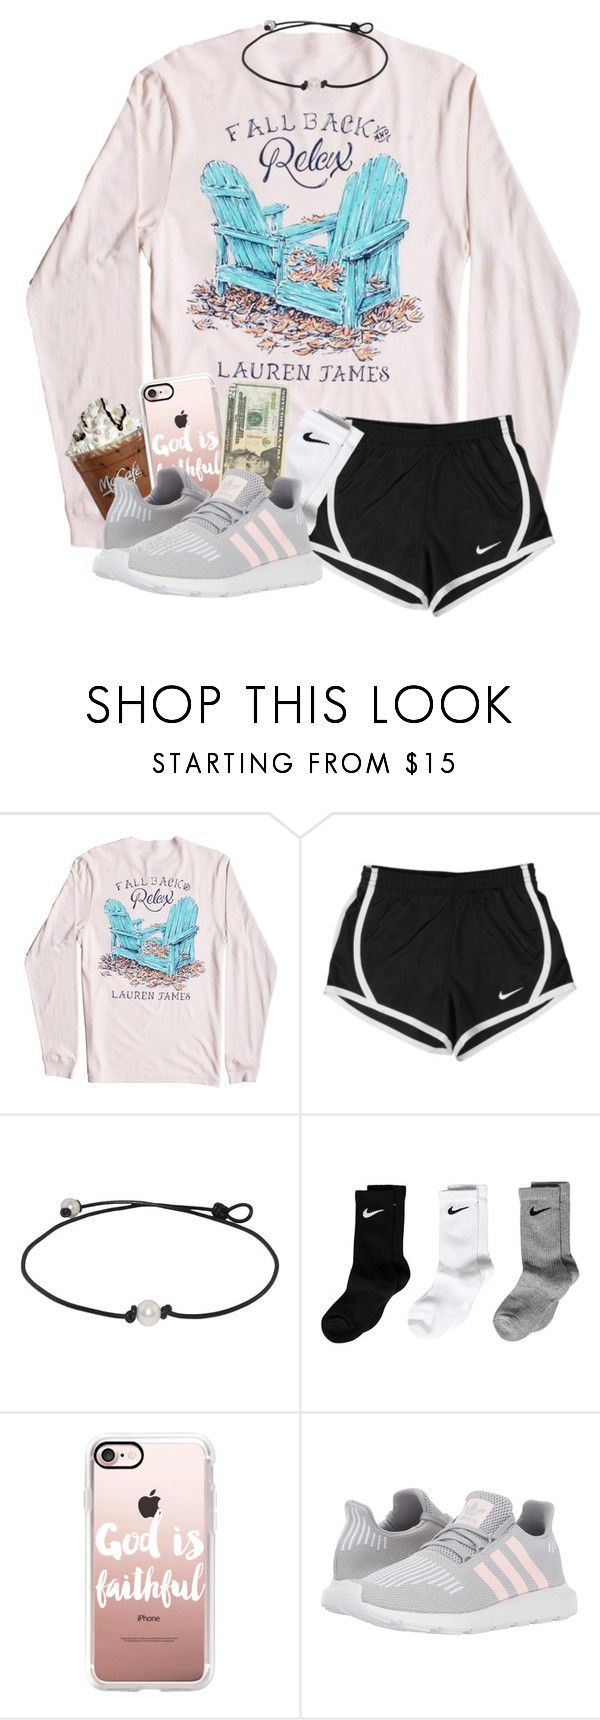 """""""Black Friday!!! (And rtd)"""" by magsvolleyball2 ❤ liked on Polyvore featuring NIKE, Casetify and adidas Originals"""